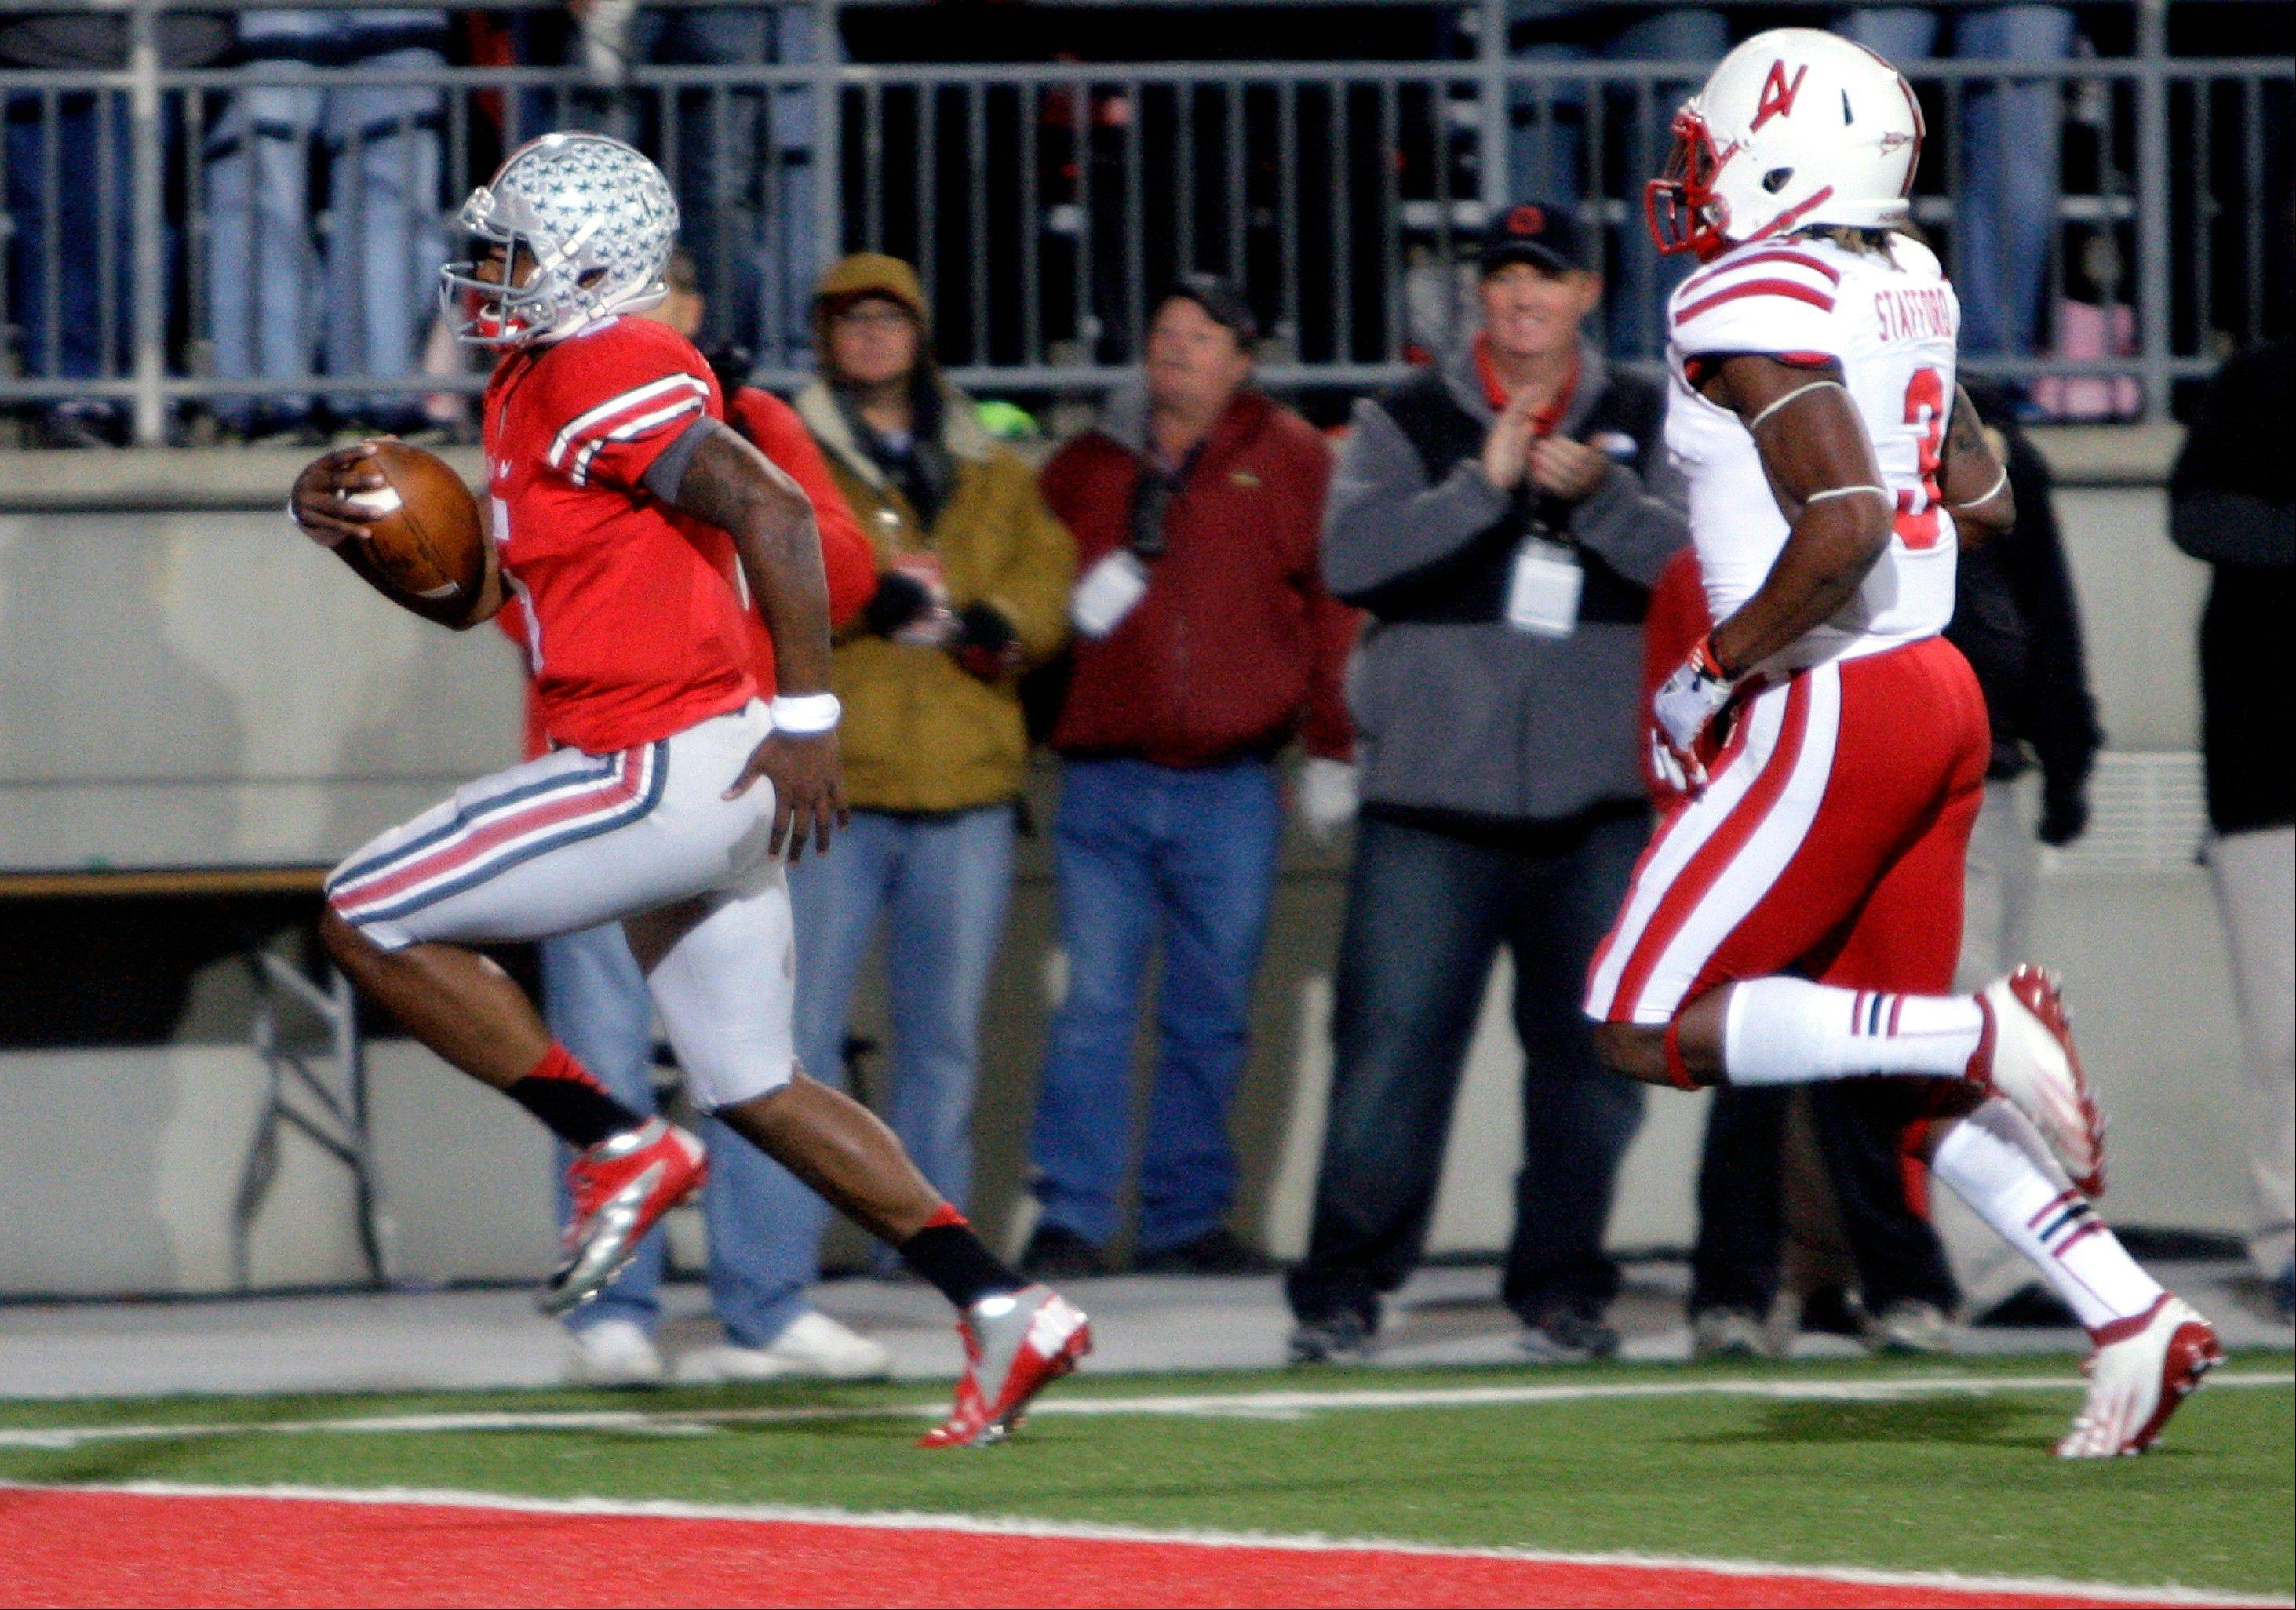 Ohio State quarterback Braxton Miller, left, scores a touchdown Saturday against Nebraska safety Daimion Stafford during the second quarter.